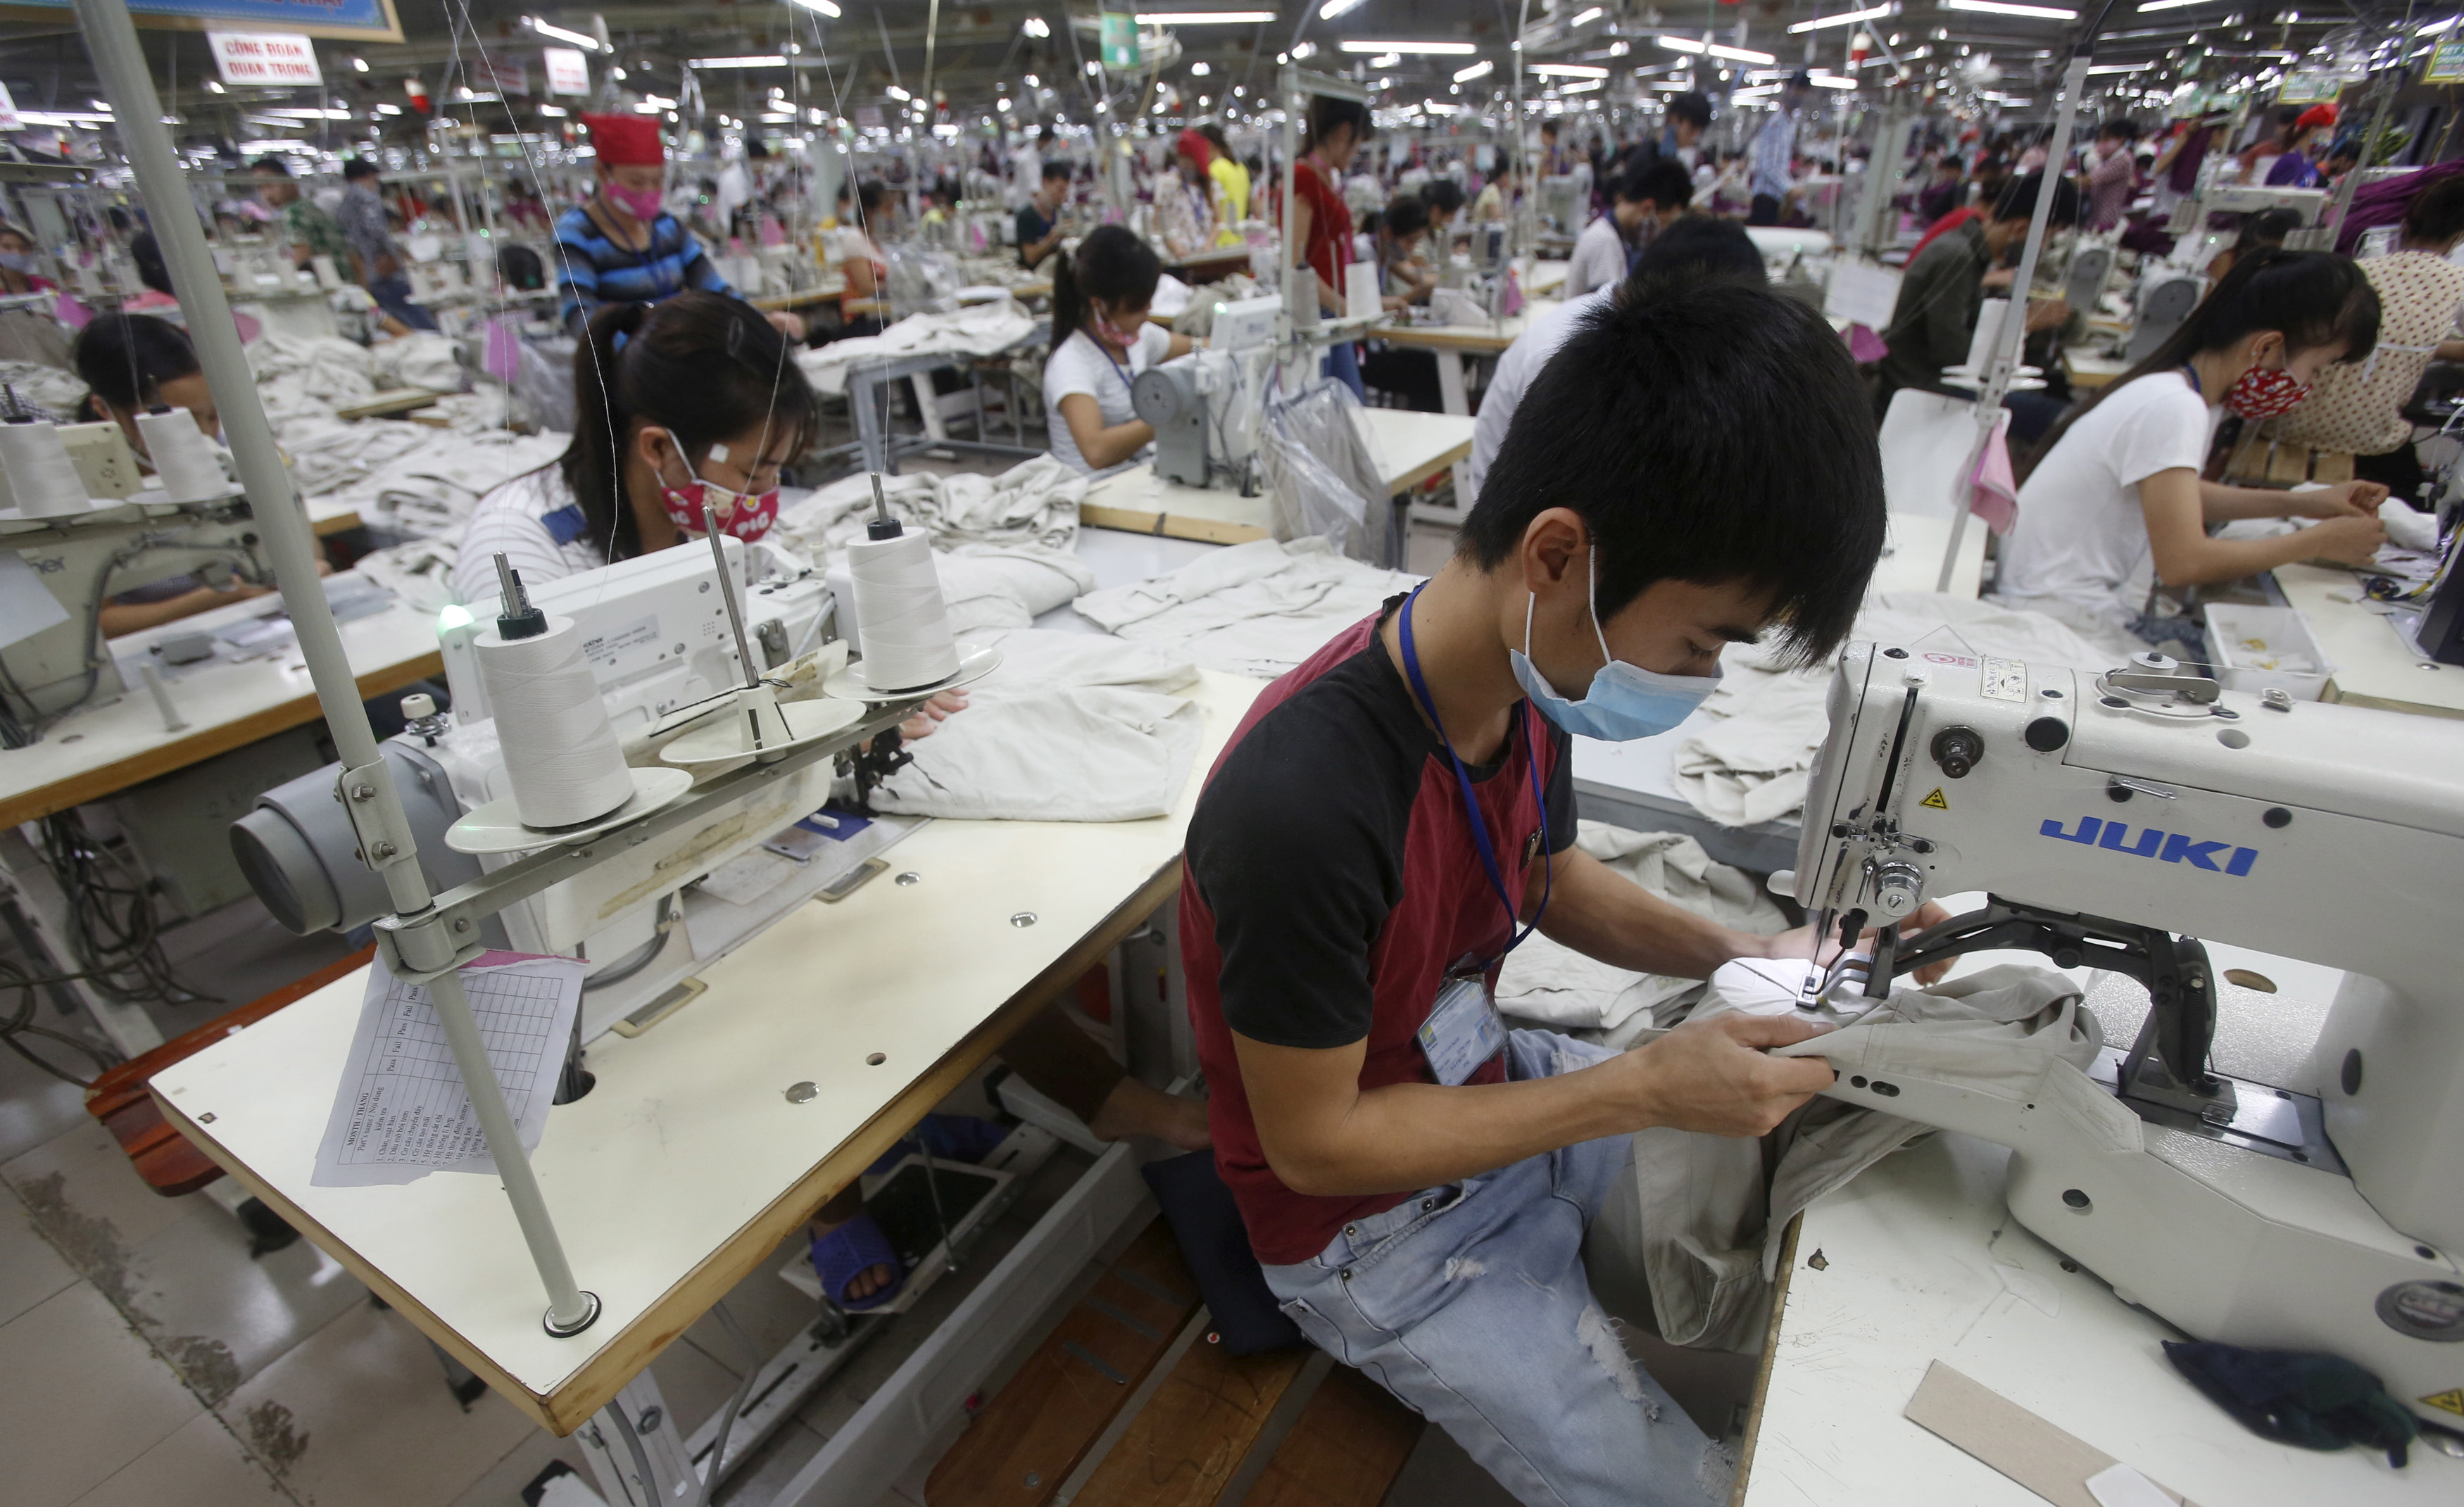 Laborers work at a garment factory in Bac Giang province, near Hanoi, Vietnam, Oct. 21, 2015.